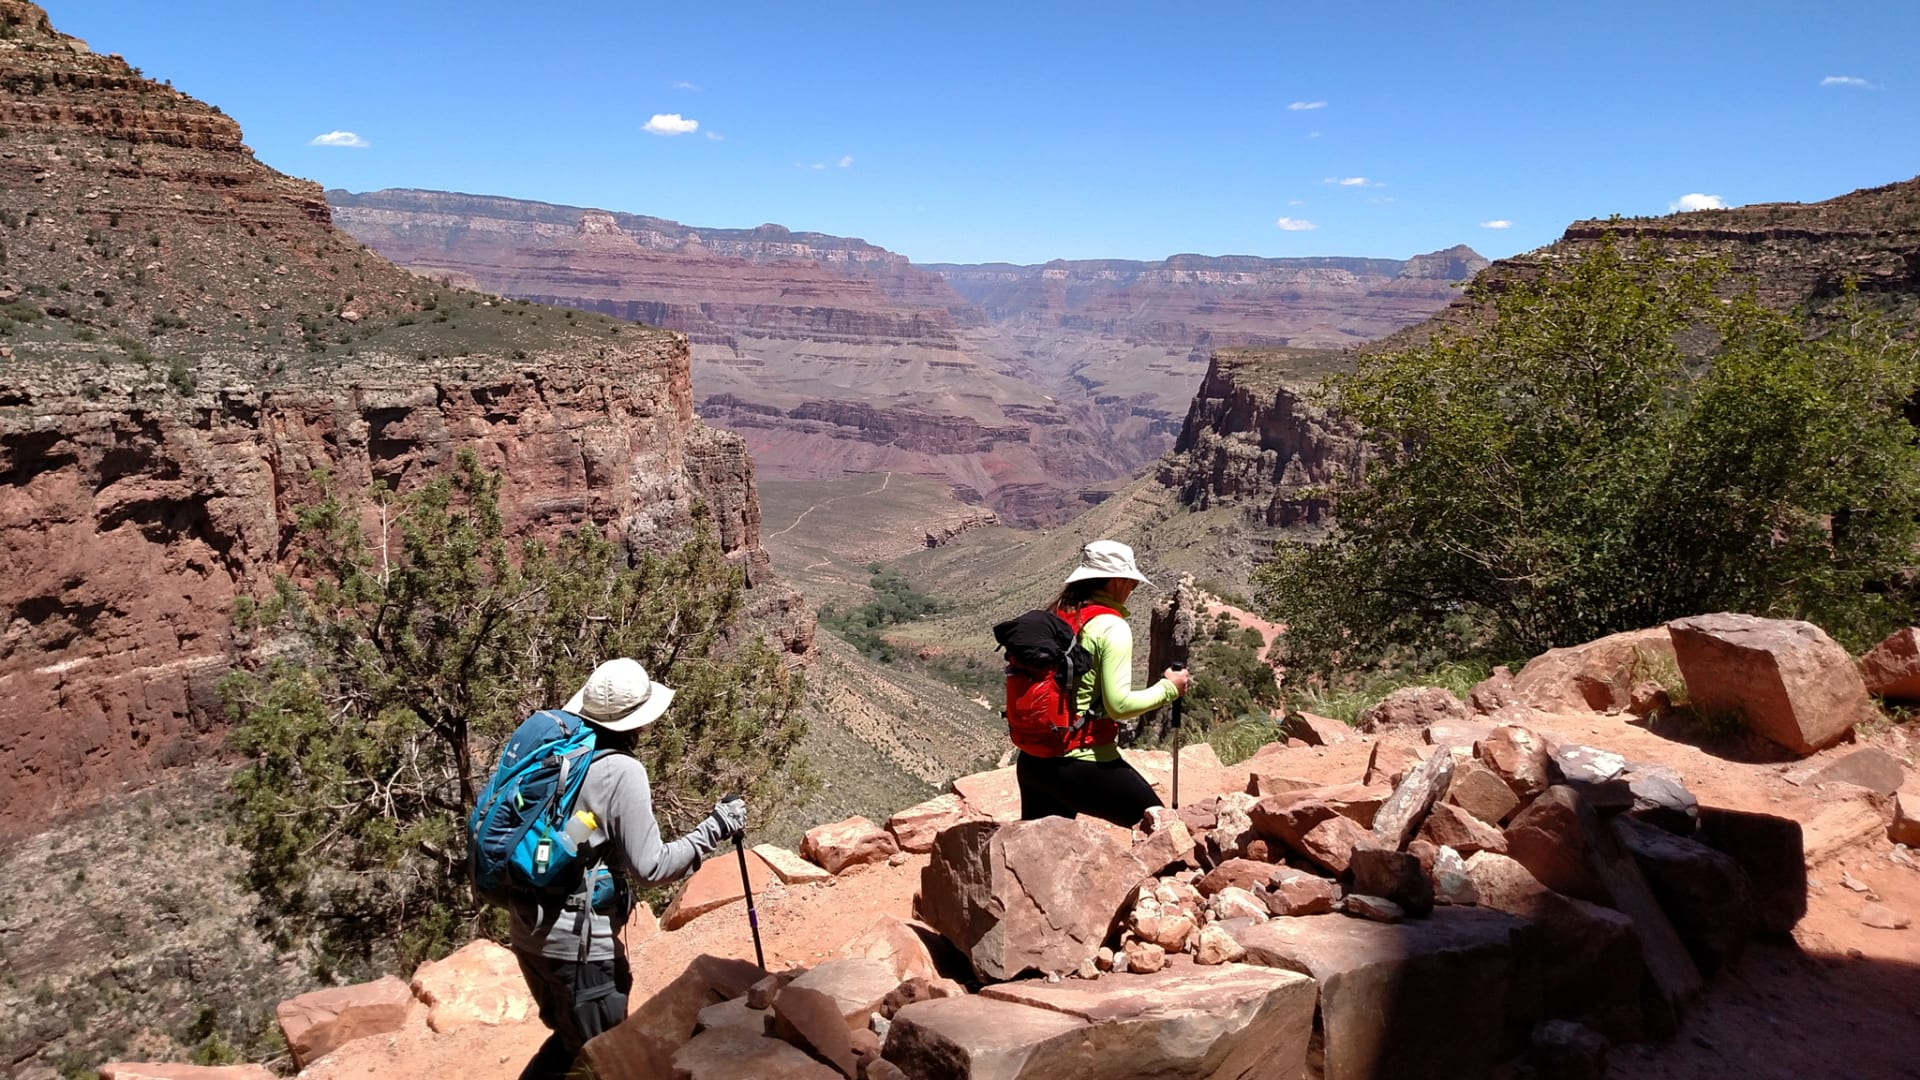 Two Timberline Adventure guides walking on Bright Angel Trail through Grand Canyon National Park.